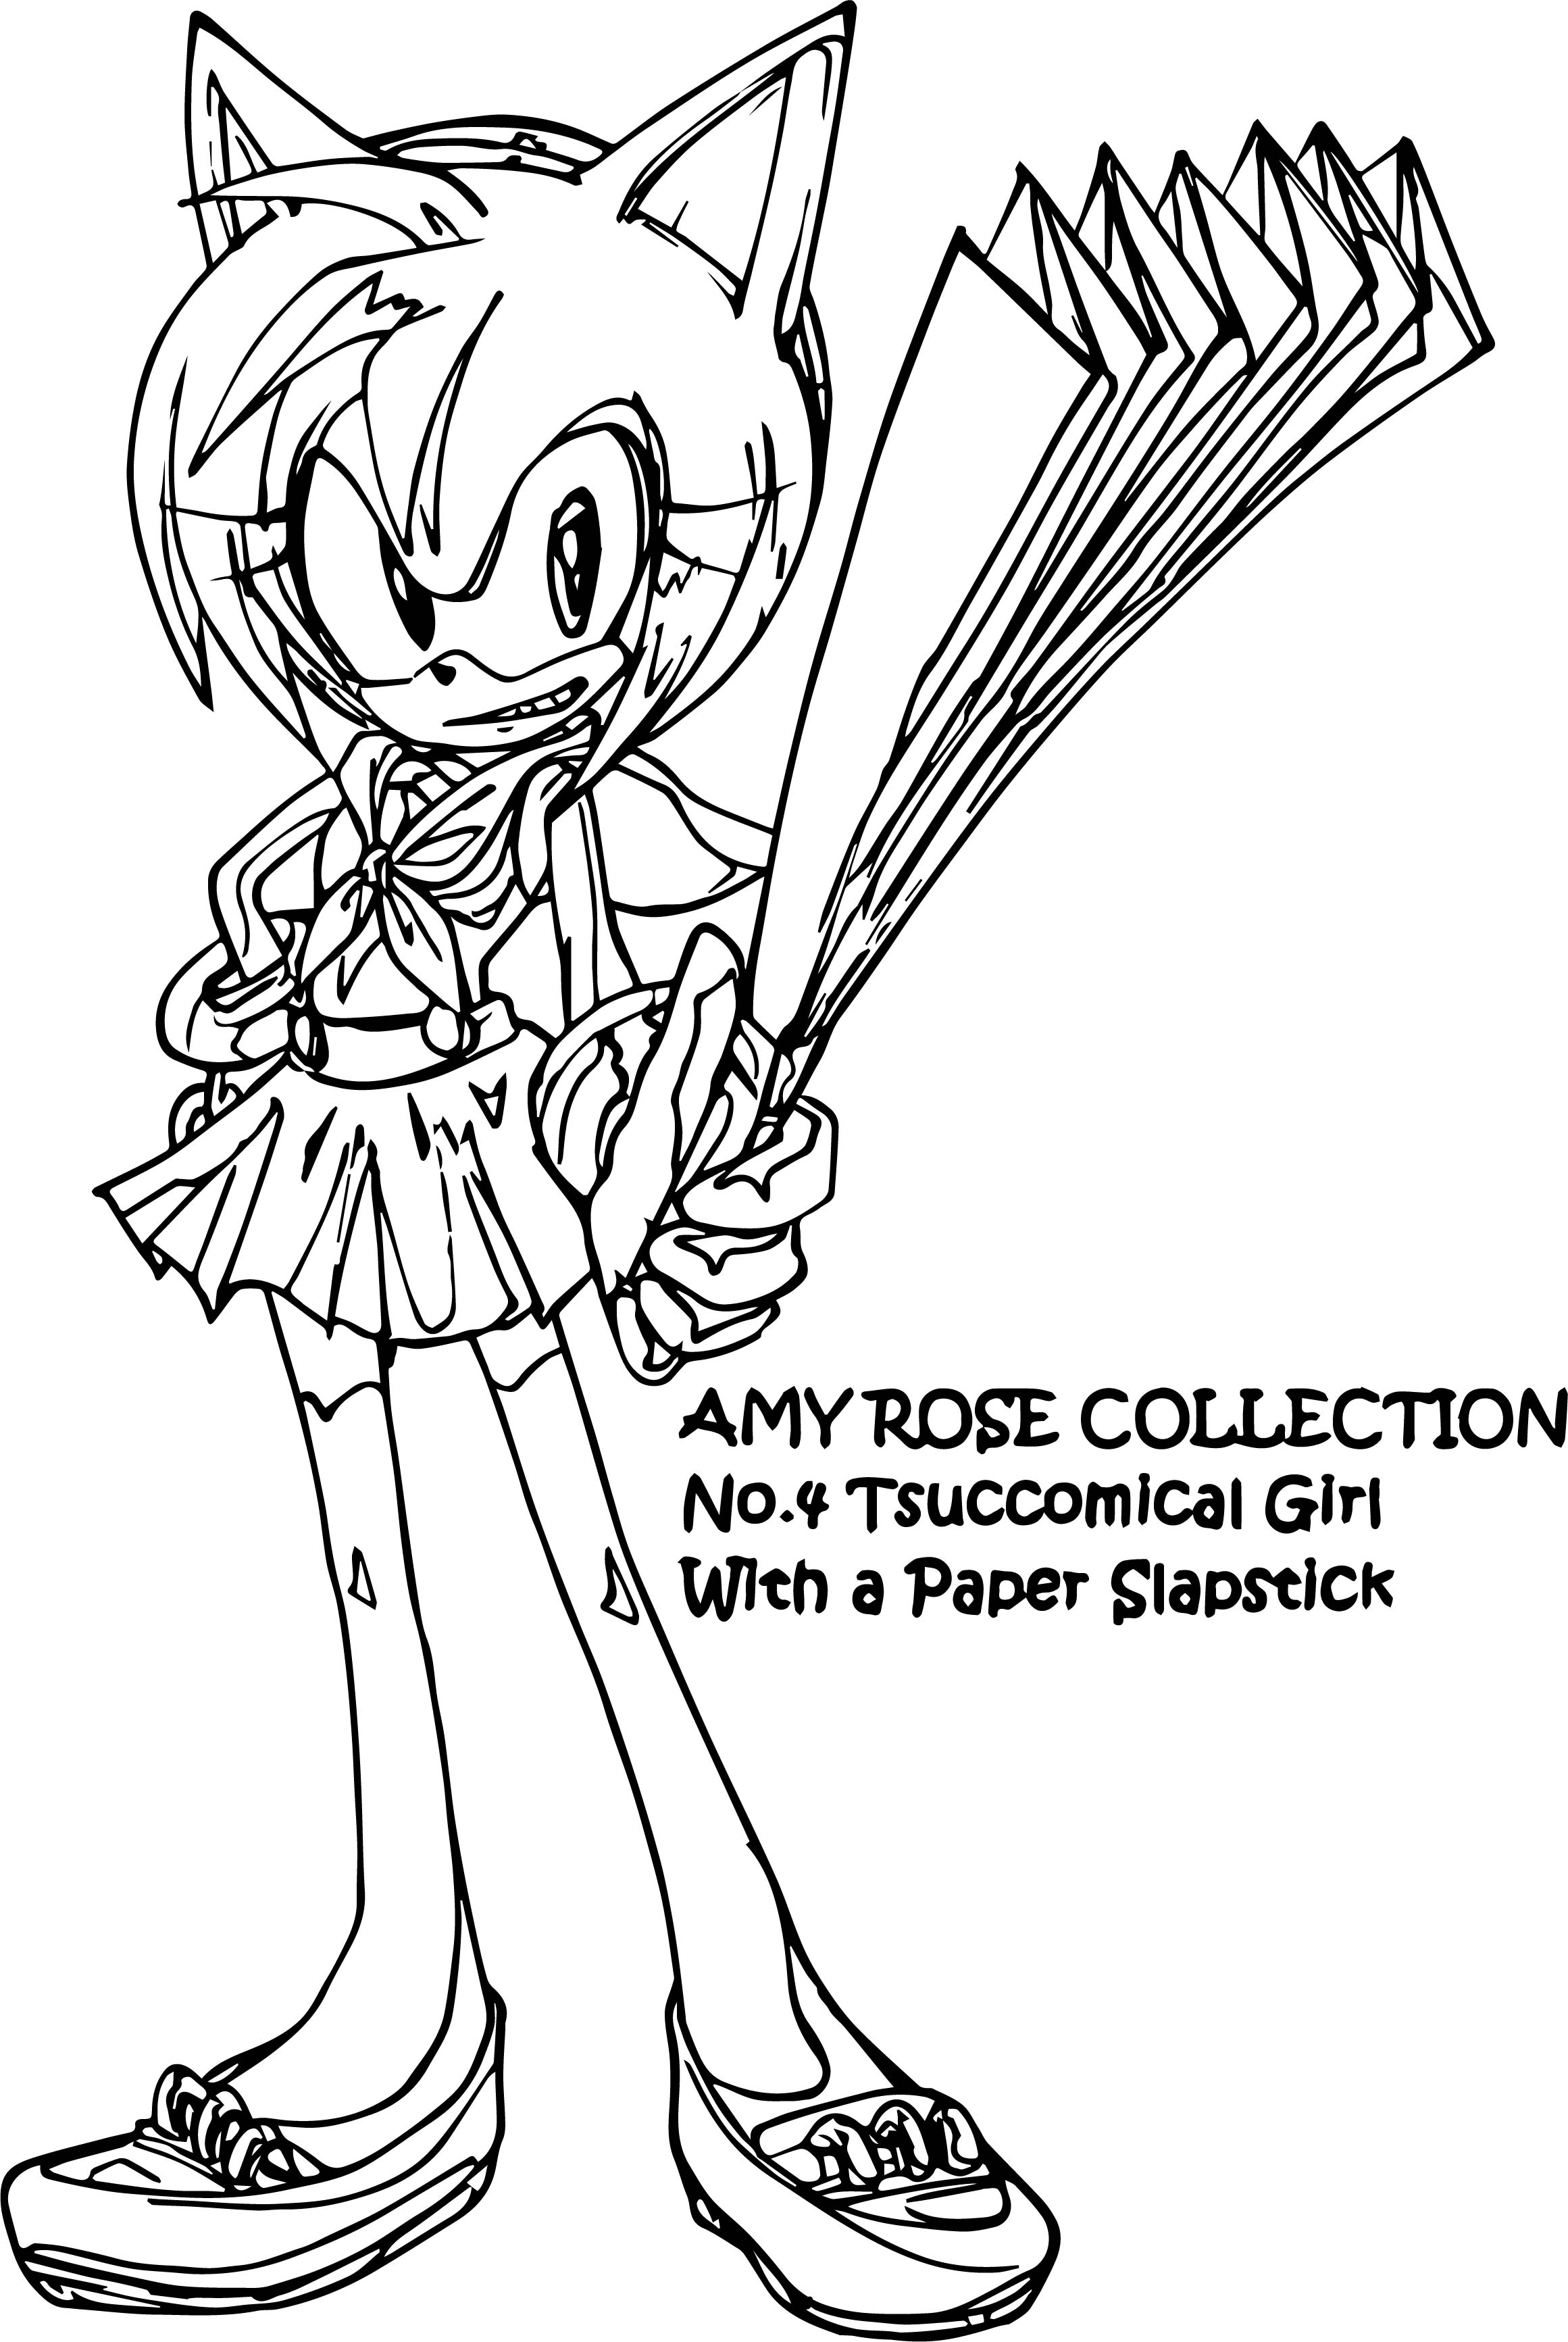 Amy Rose Collection Coloring Page